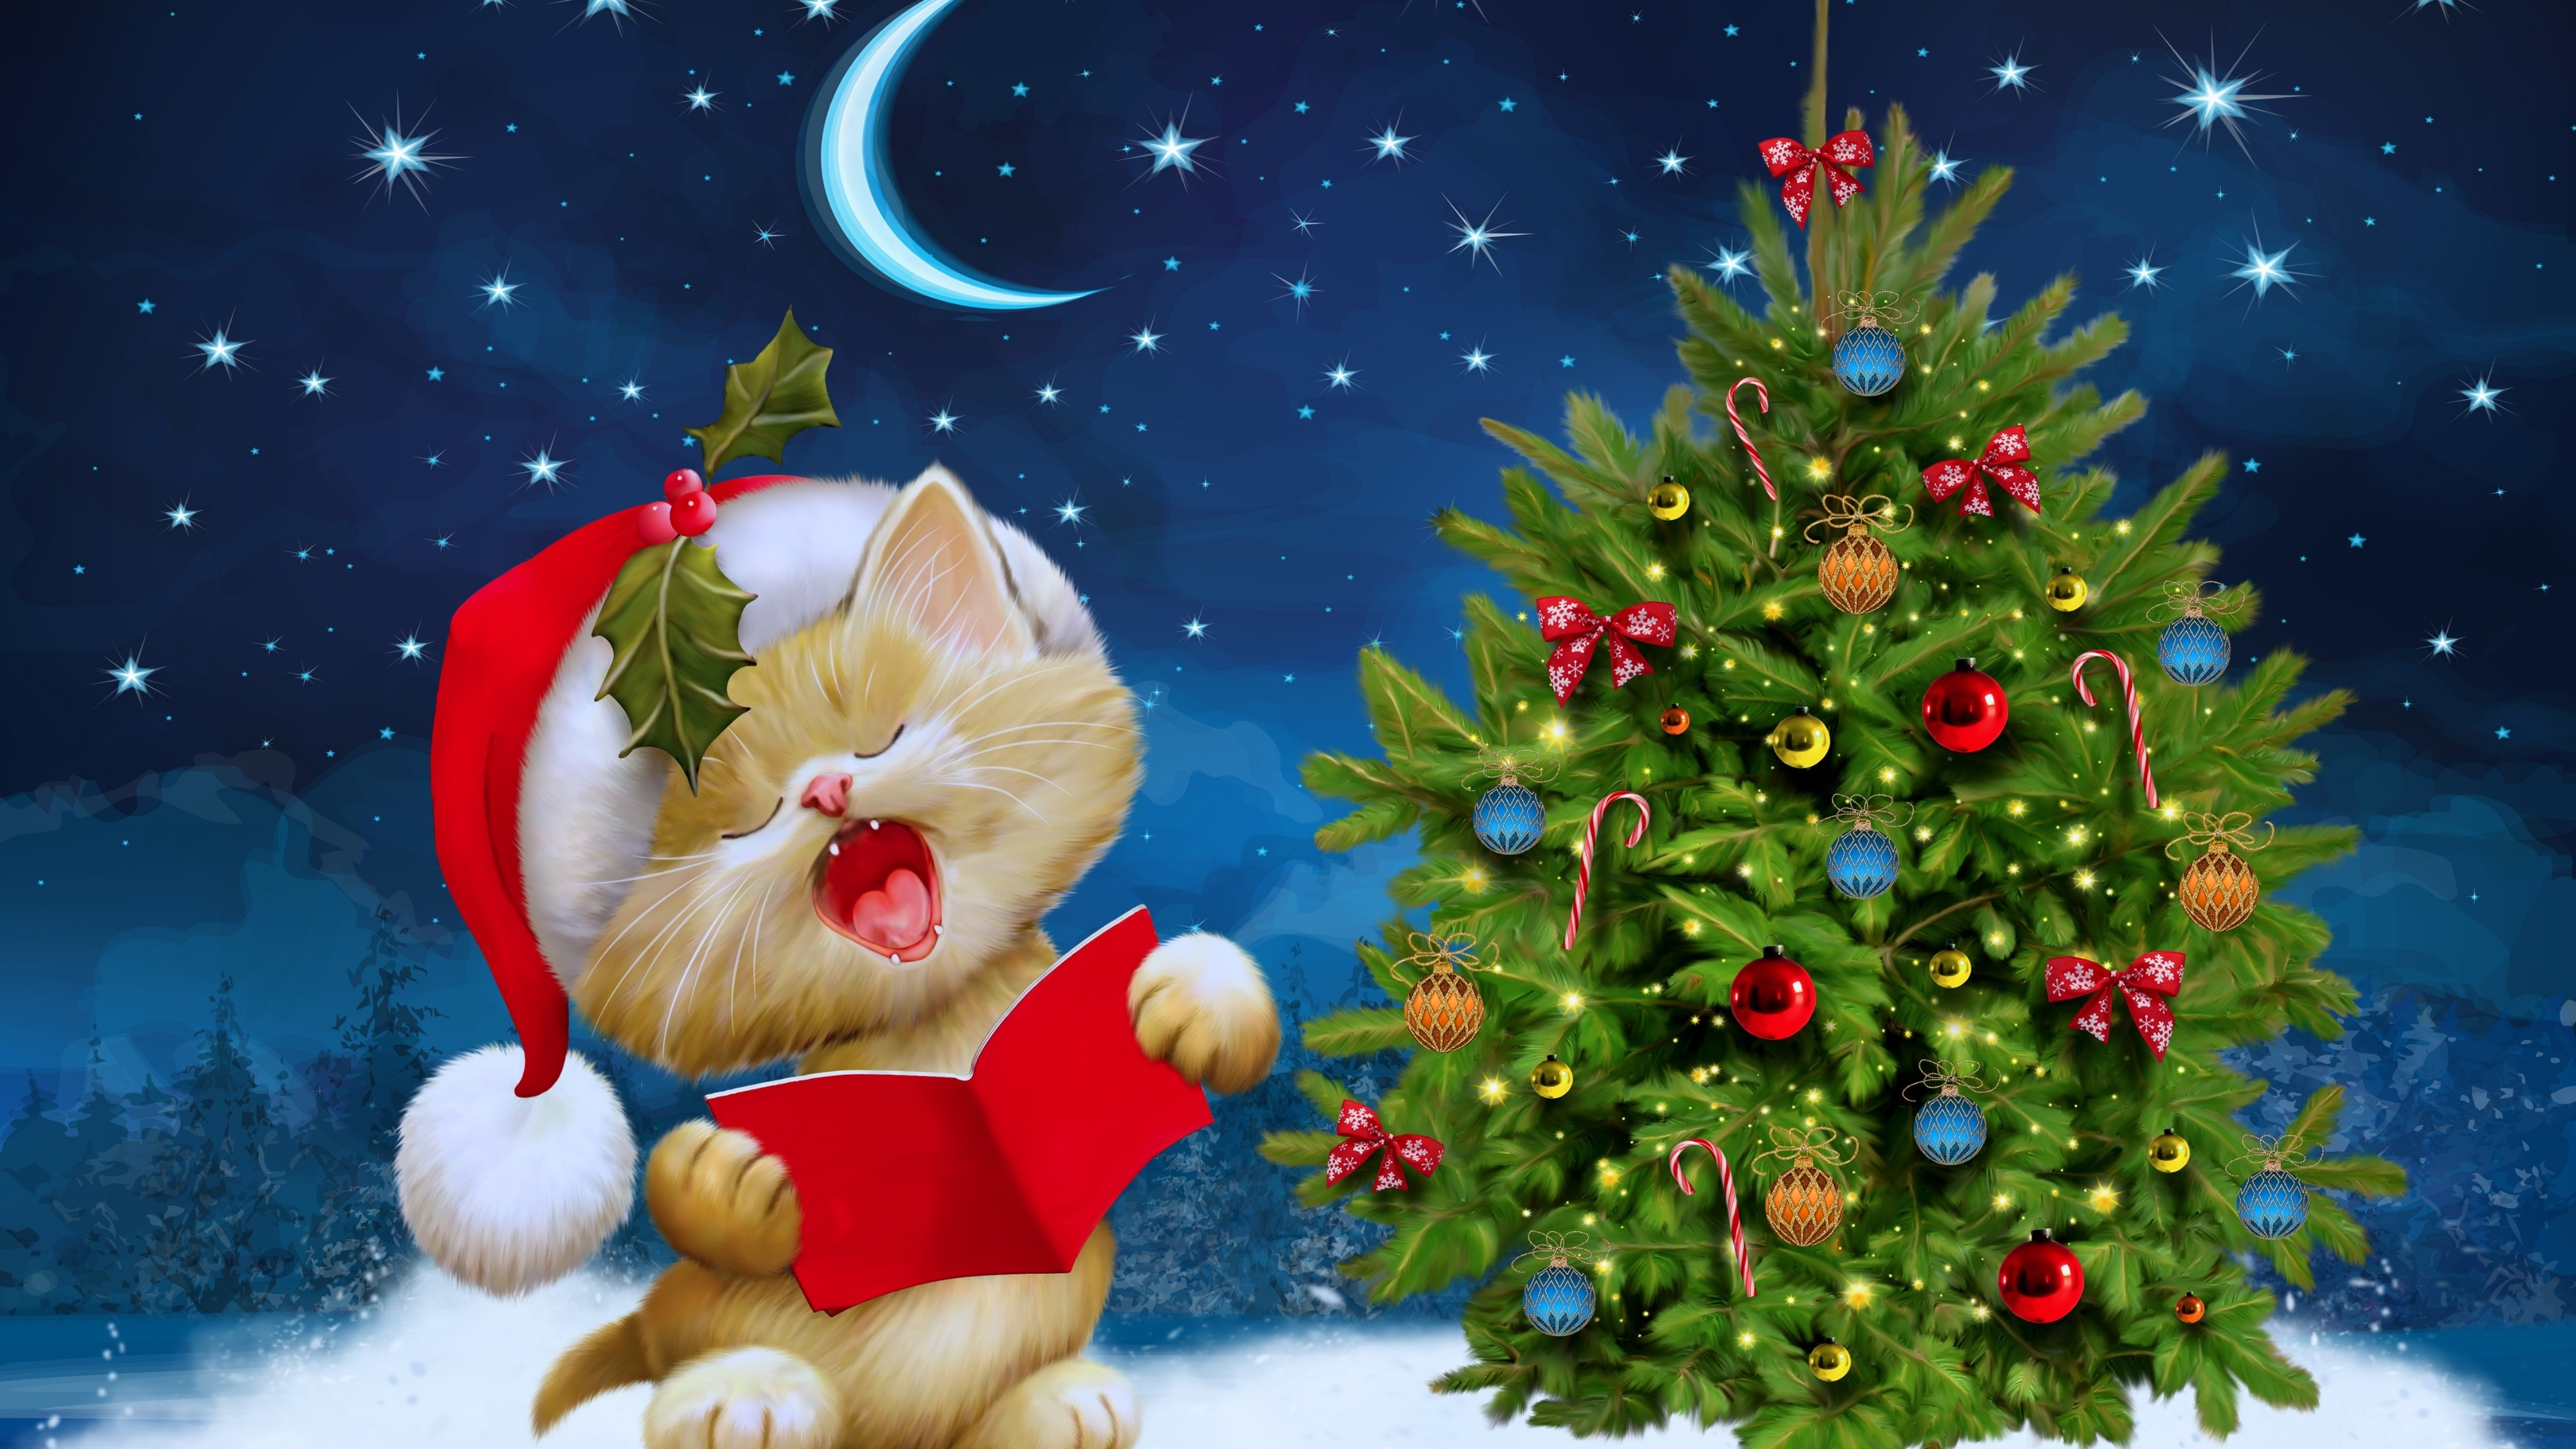 3840x2160 Christmas Tree with kitty high definition wallpapers free download